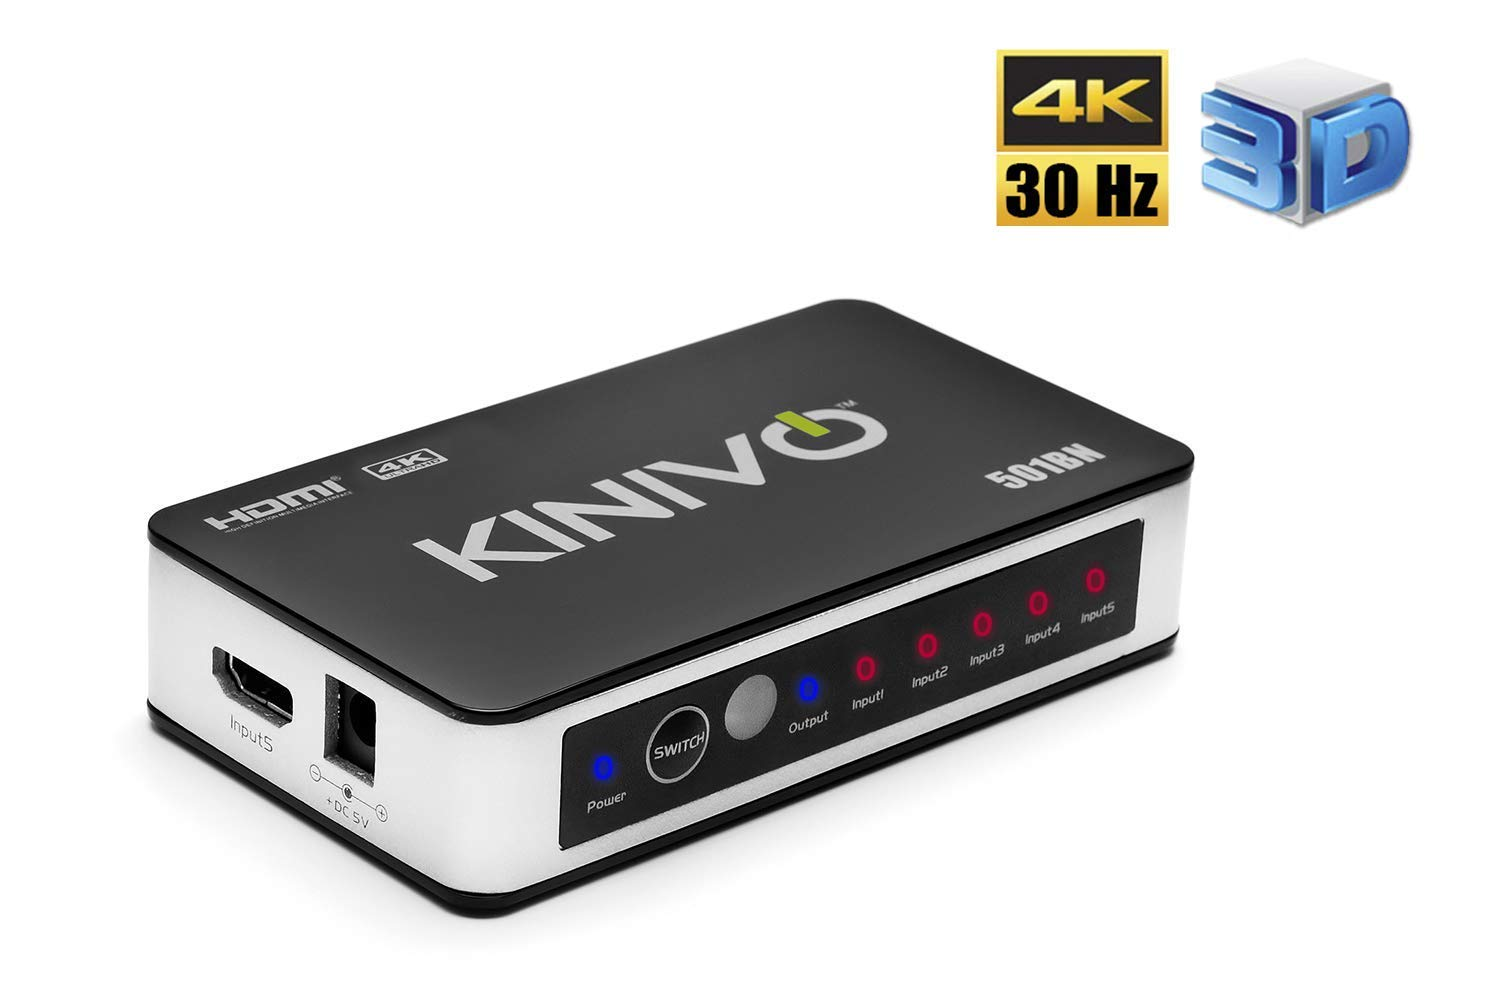 Kinivo 501BN 5-Port High Speed 4K 30Hz HDMI Switch With IR Wireless Remote And AC Power Adapter - For Xbox 360/One, PS4/PS3, Nintendo Switch, Blu-ray Player, Apple TV, Roku etc